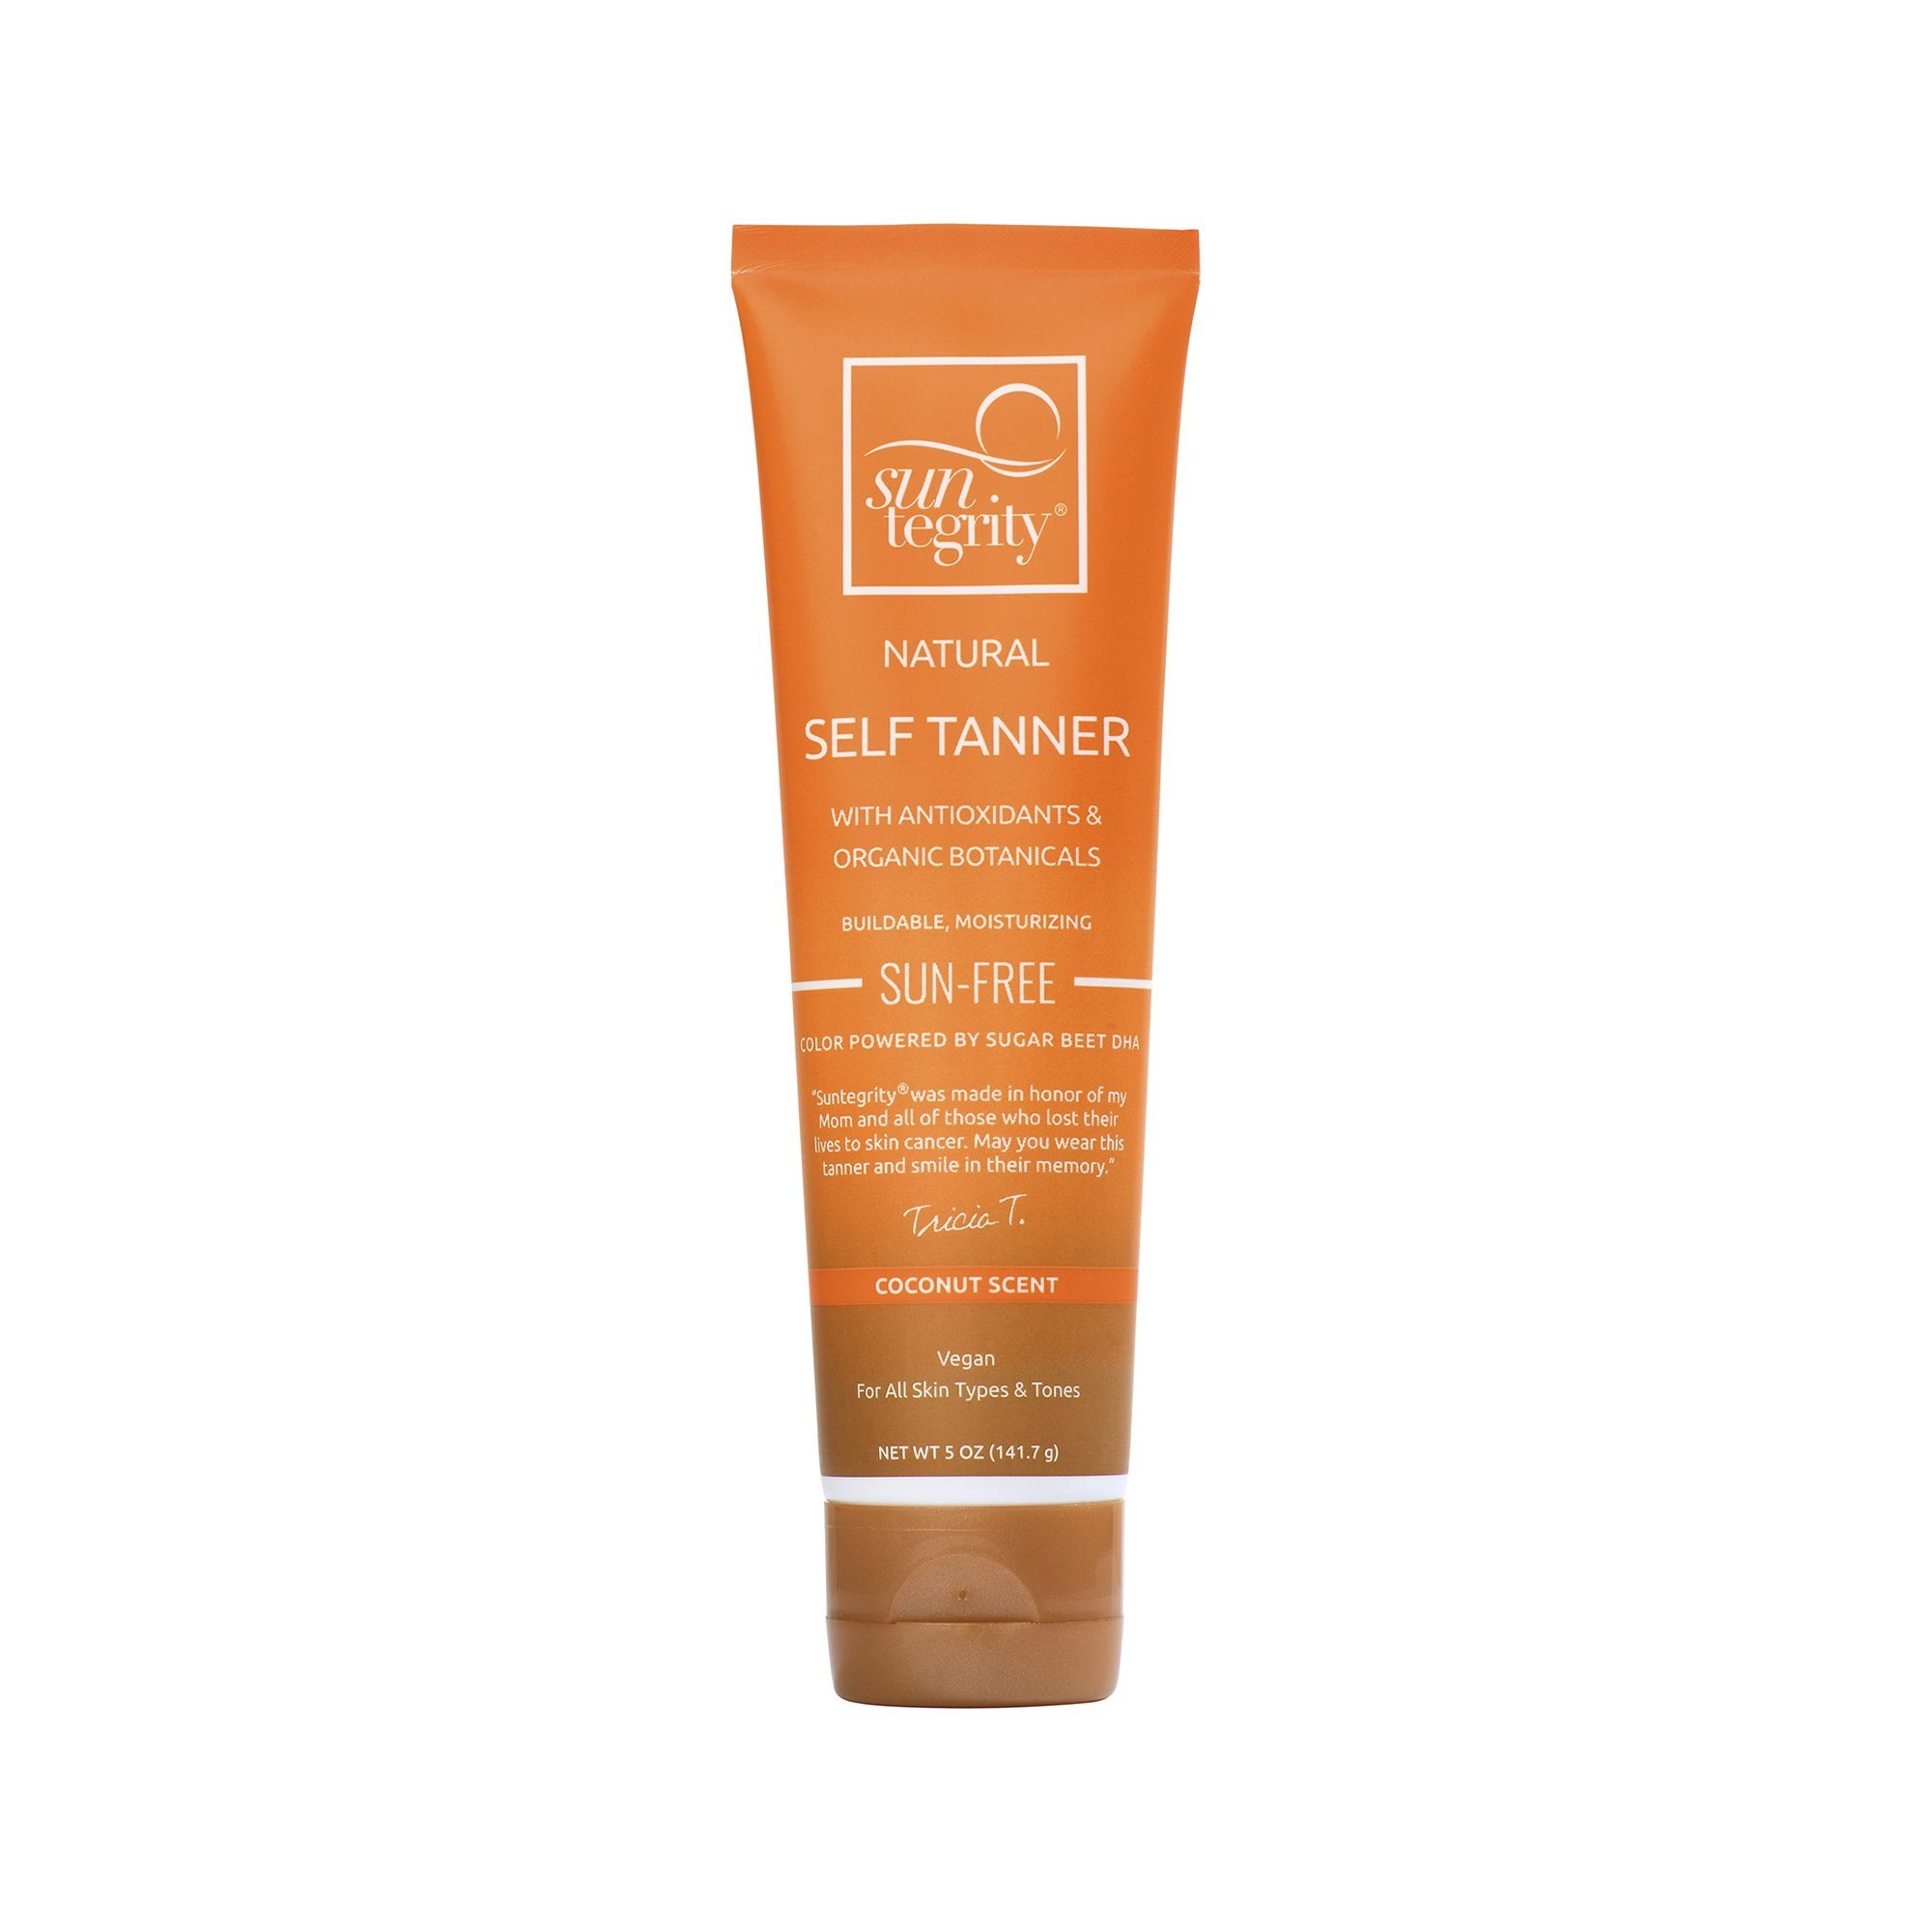 5-in-1 Natural Self Tanner